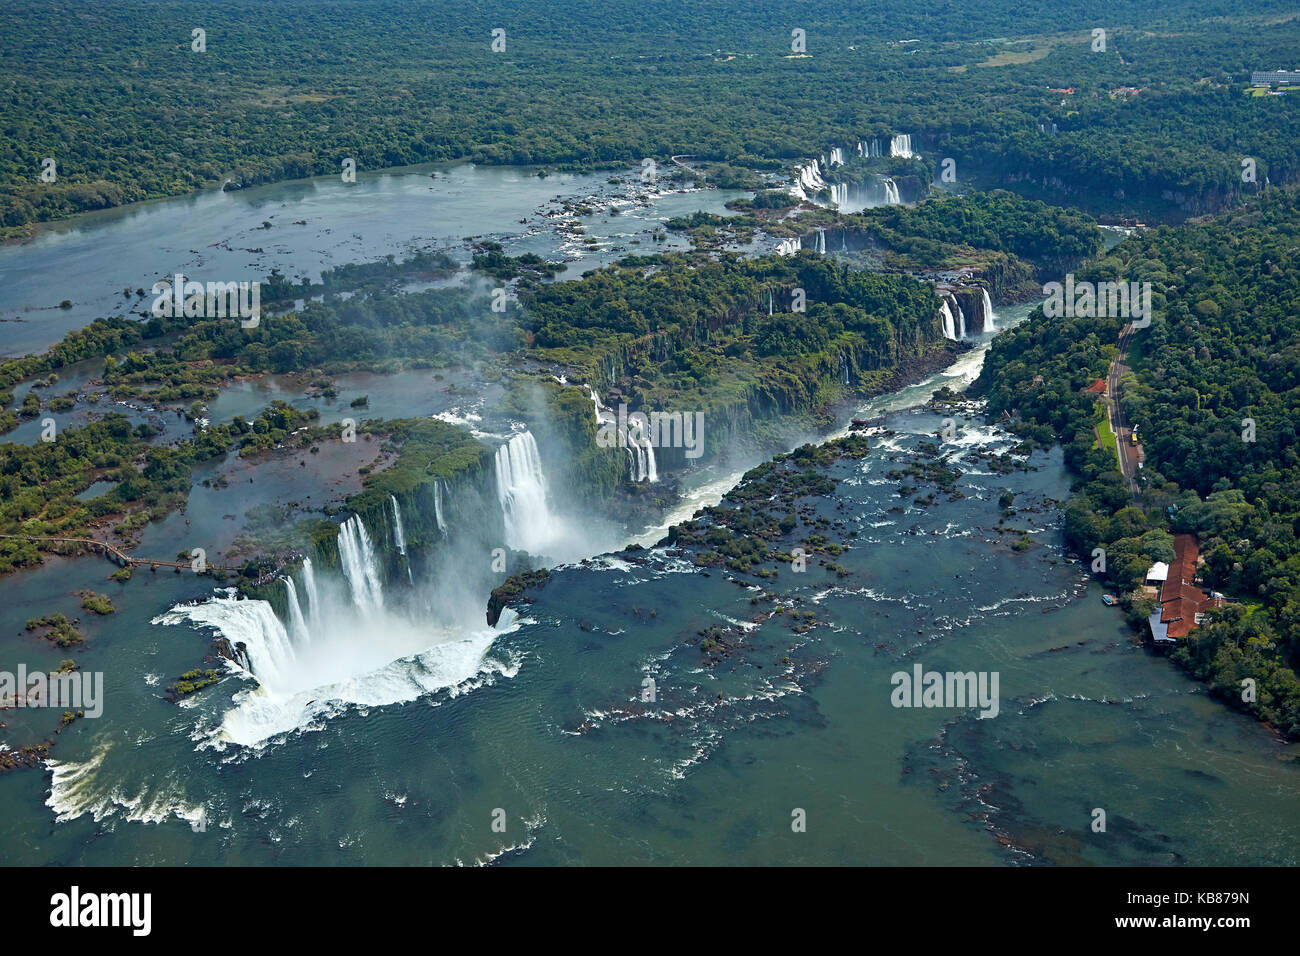 Devil's Throat (Garganta do Diabo), Iguazu Falls, on Brazil - Argentina Border, South America - aerial - Stock Image